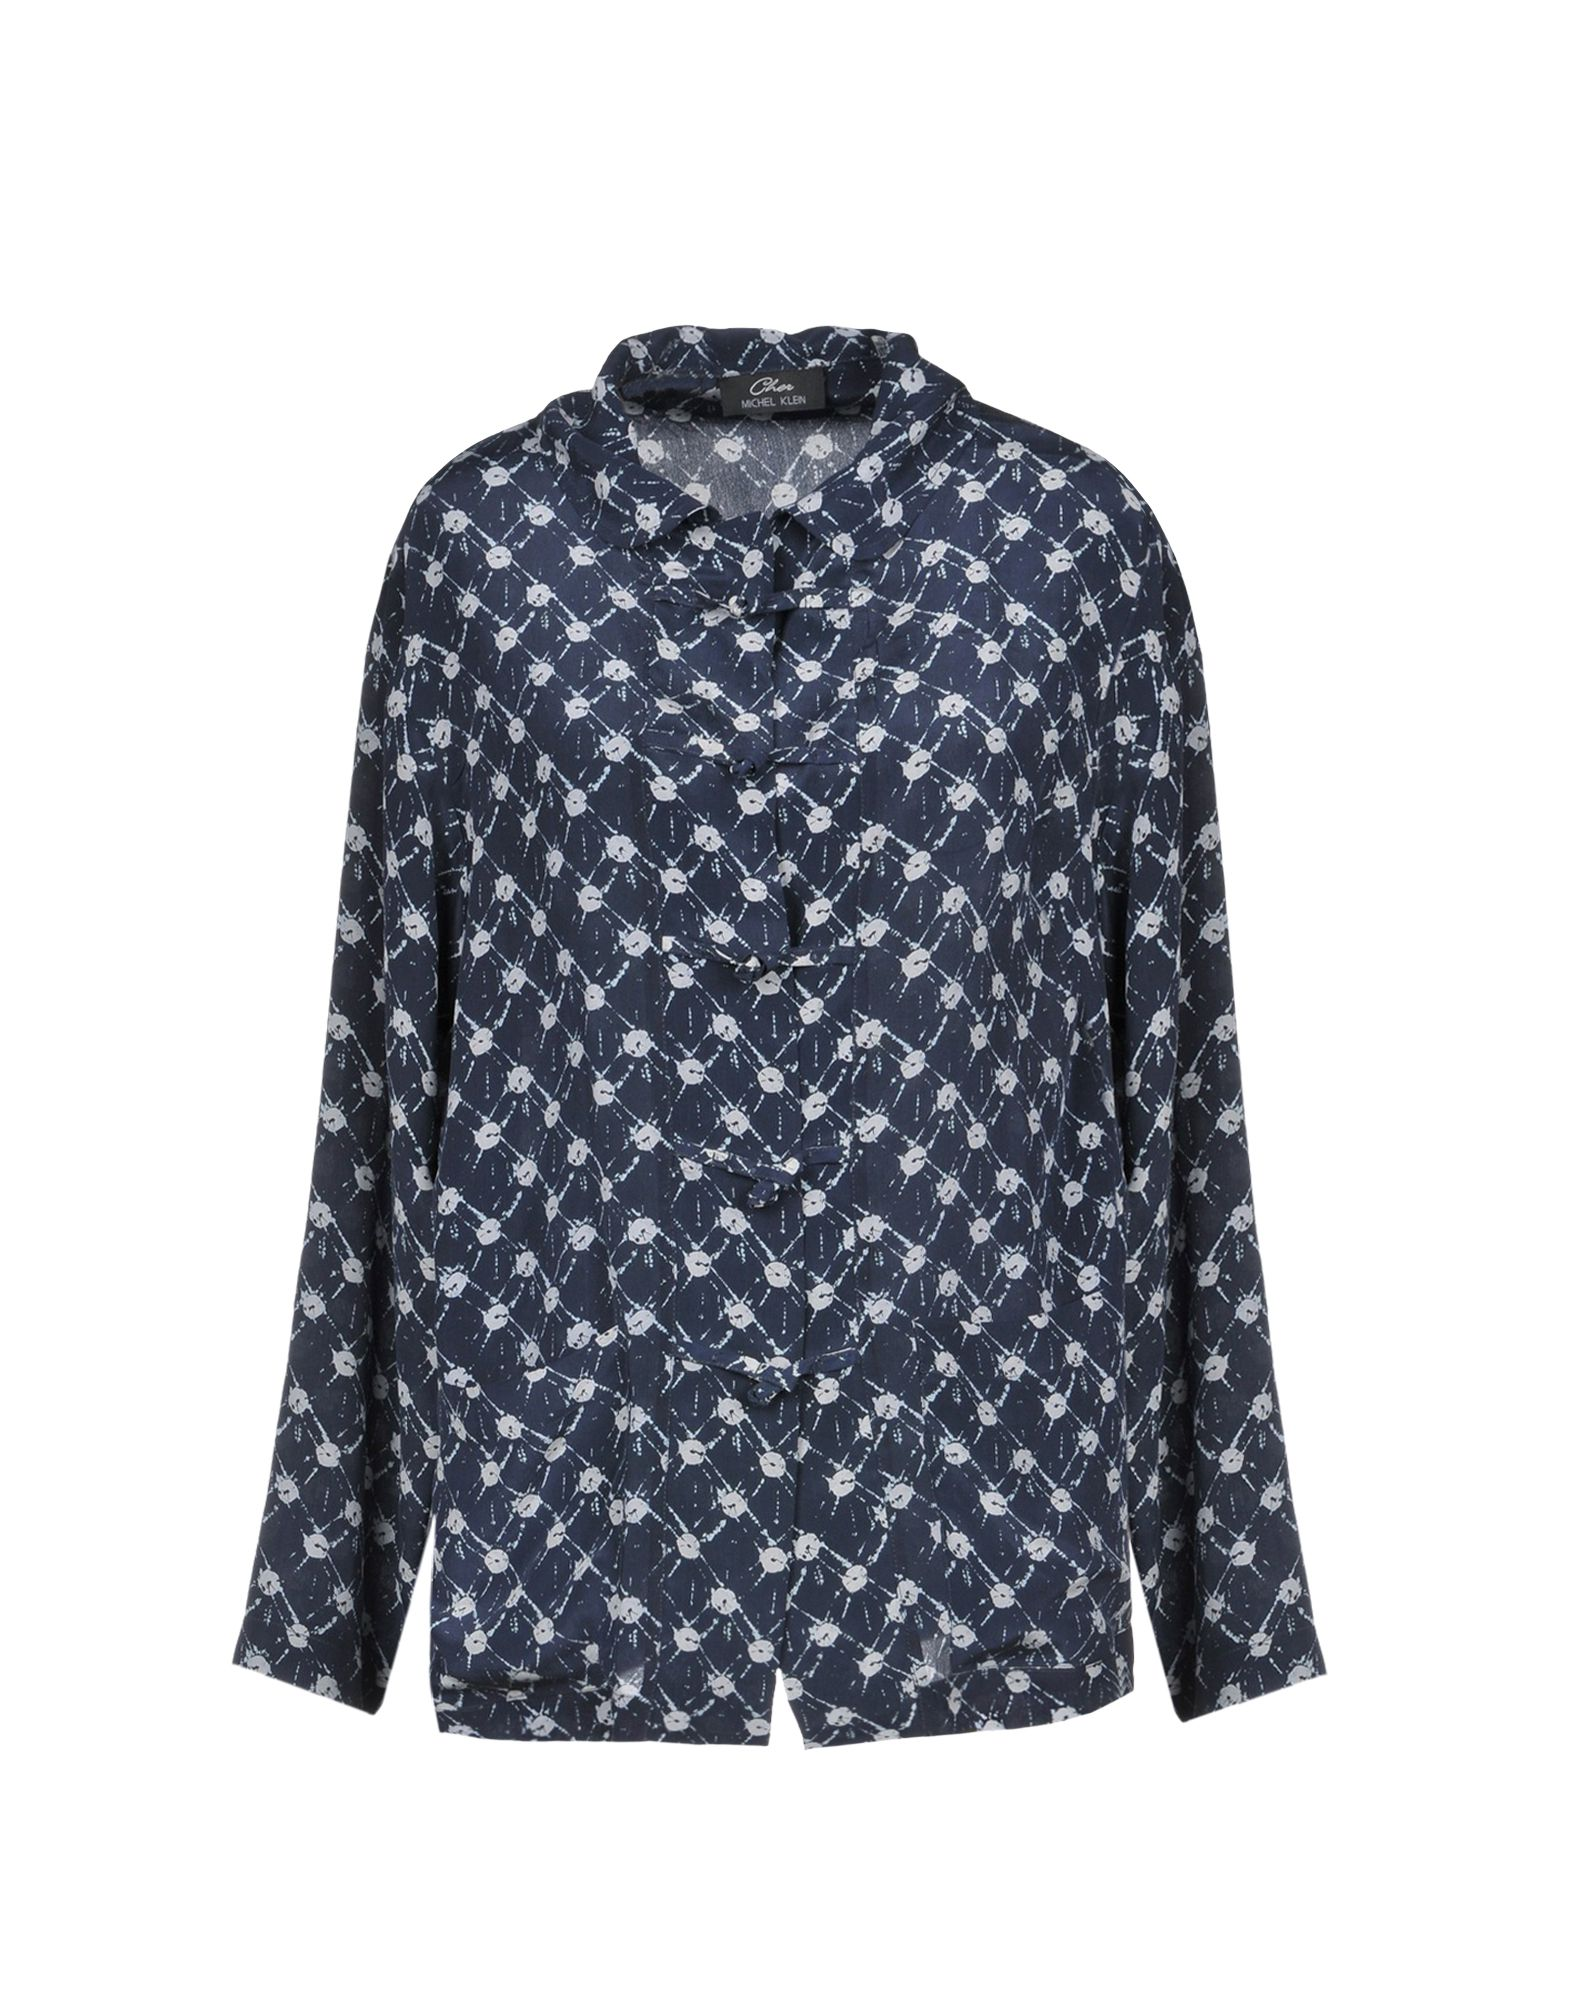 CHER MICHEL KLEIN Patterned Shirts & Blouses in Dark Blue